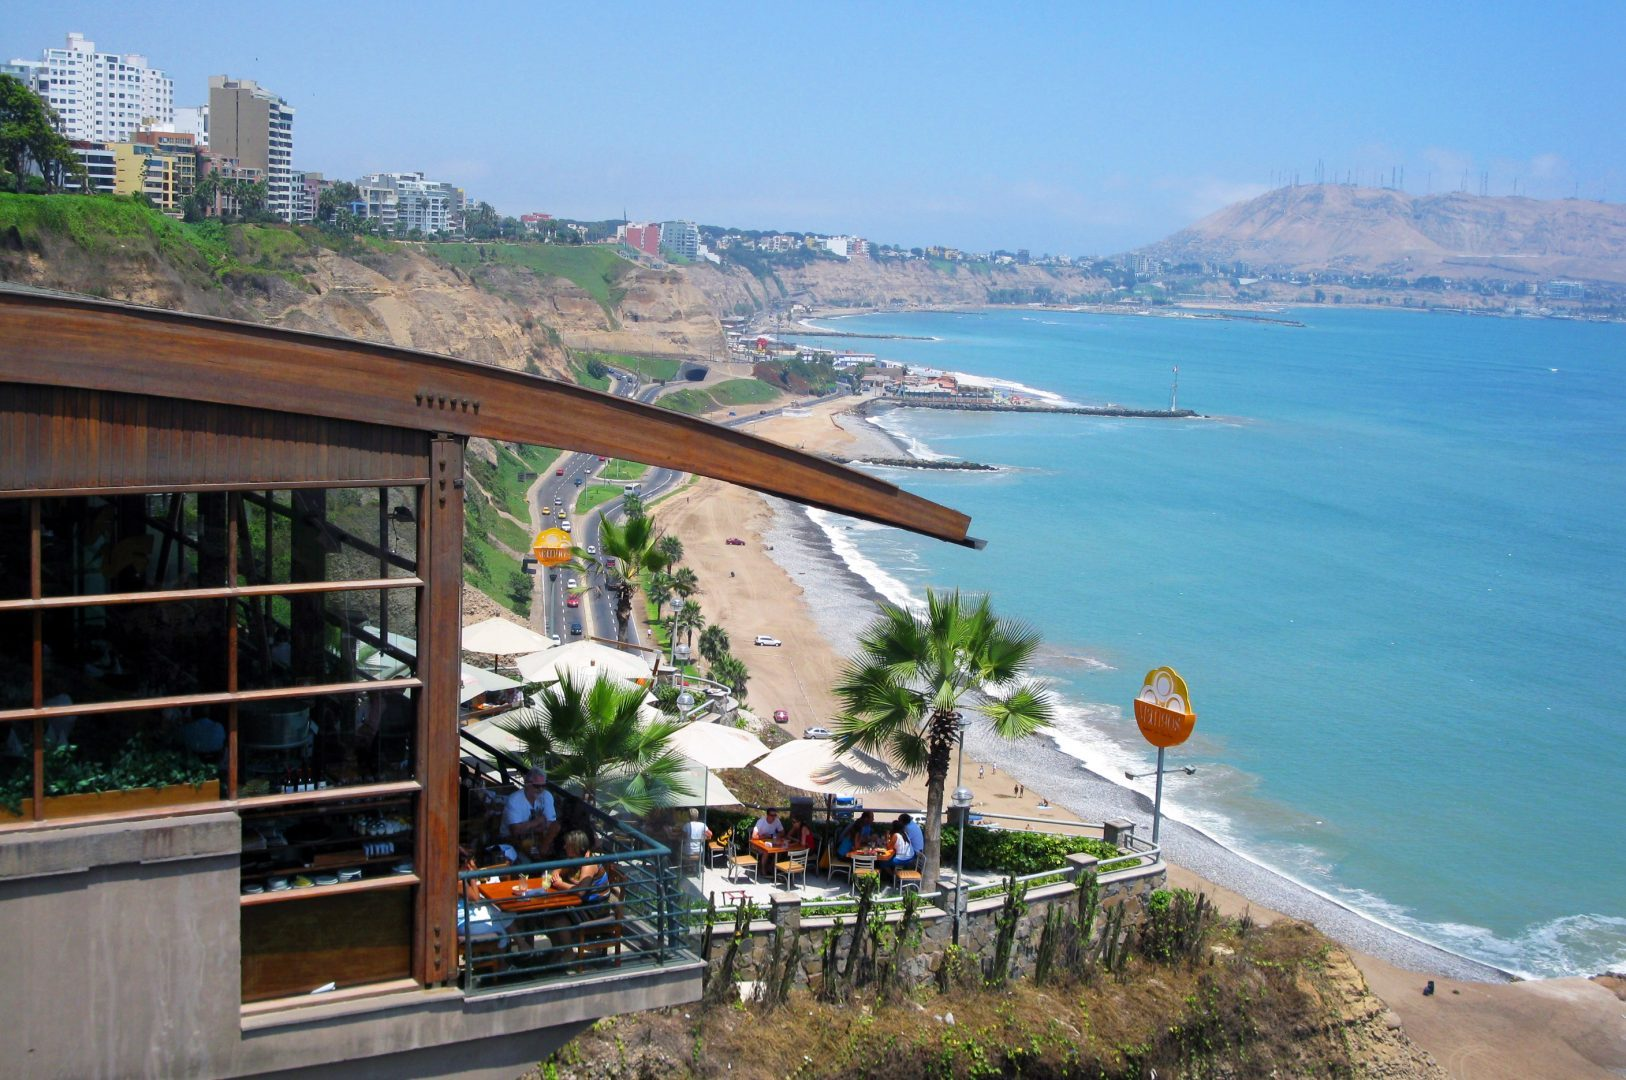 Peru_Lima_Restaurant on cliff near the coast